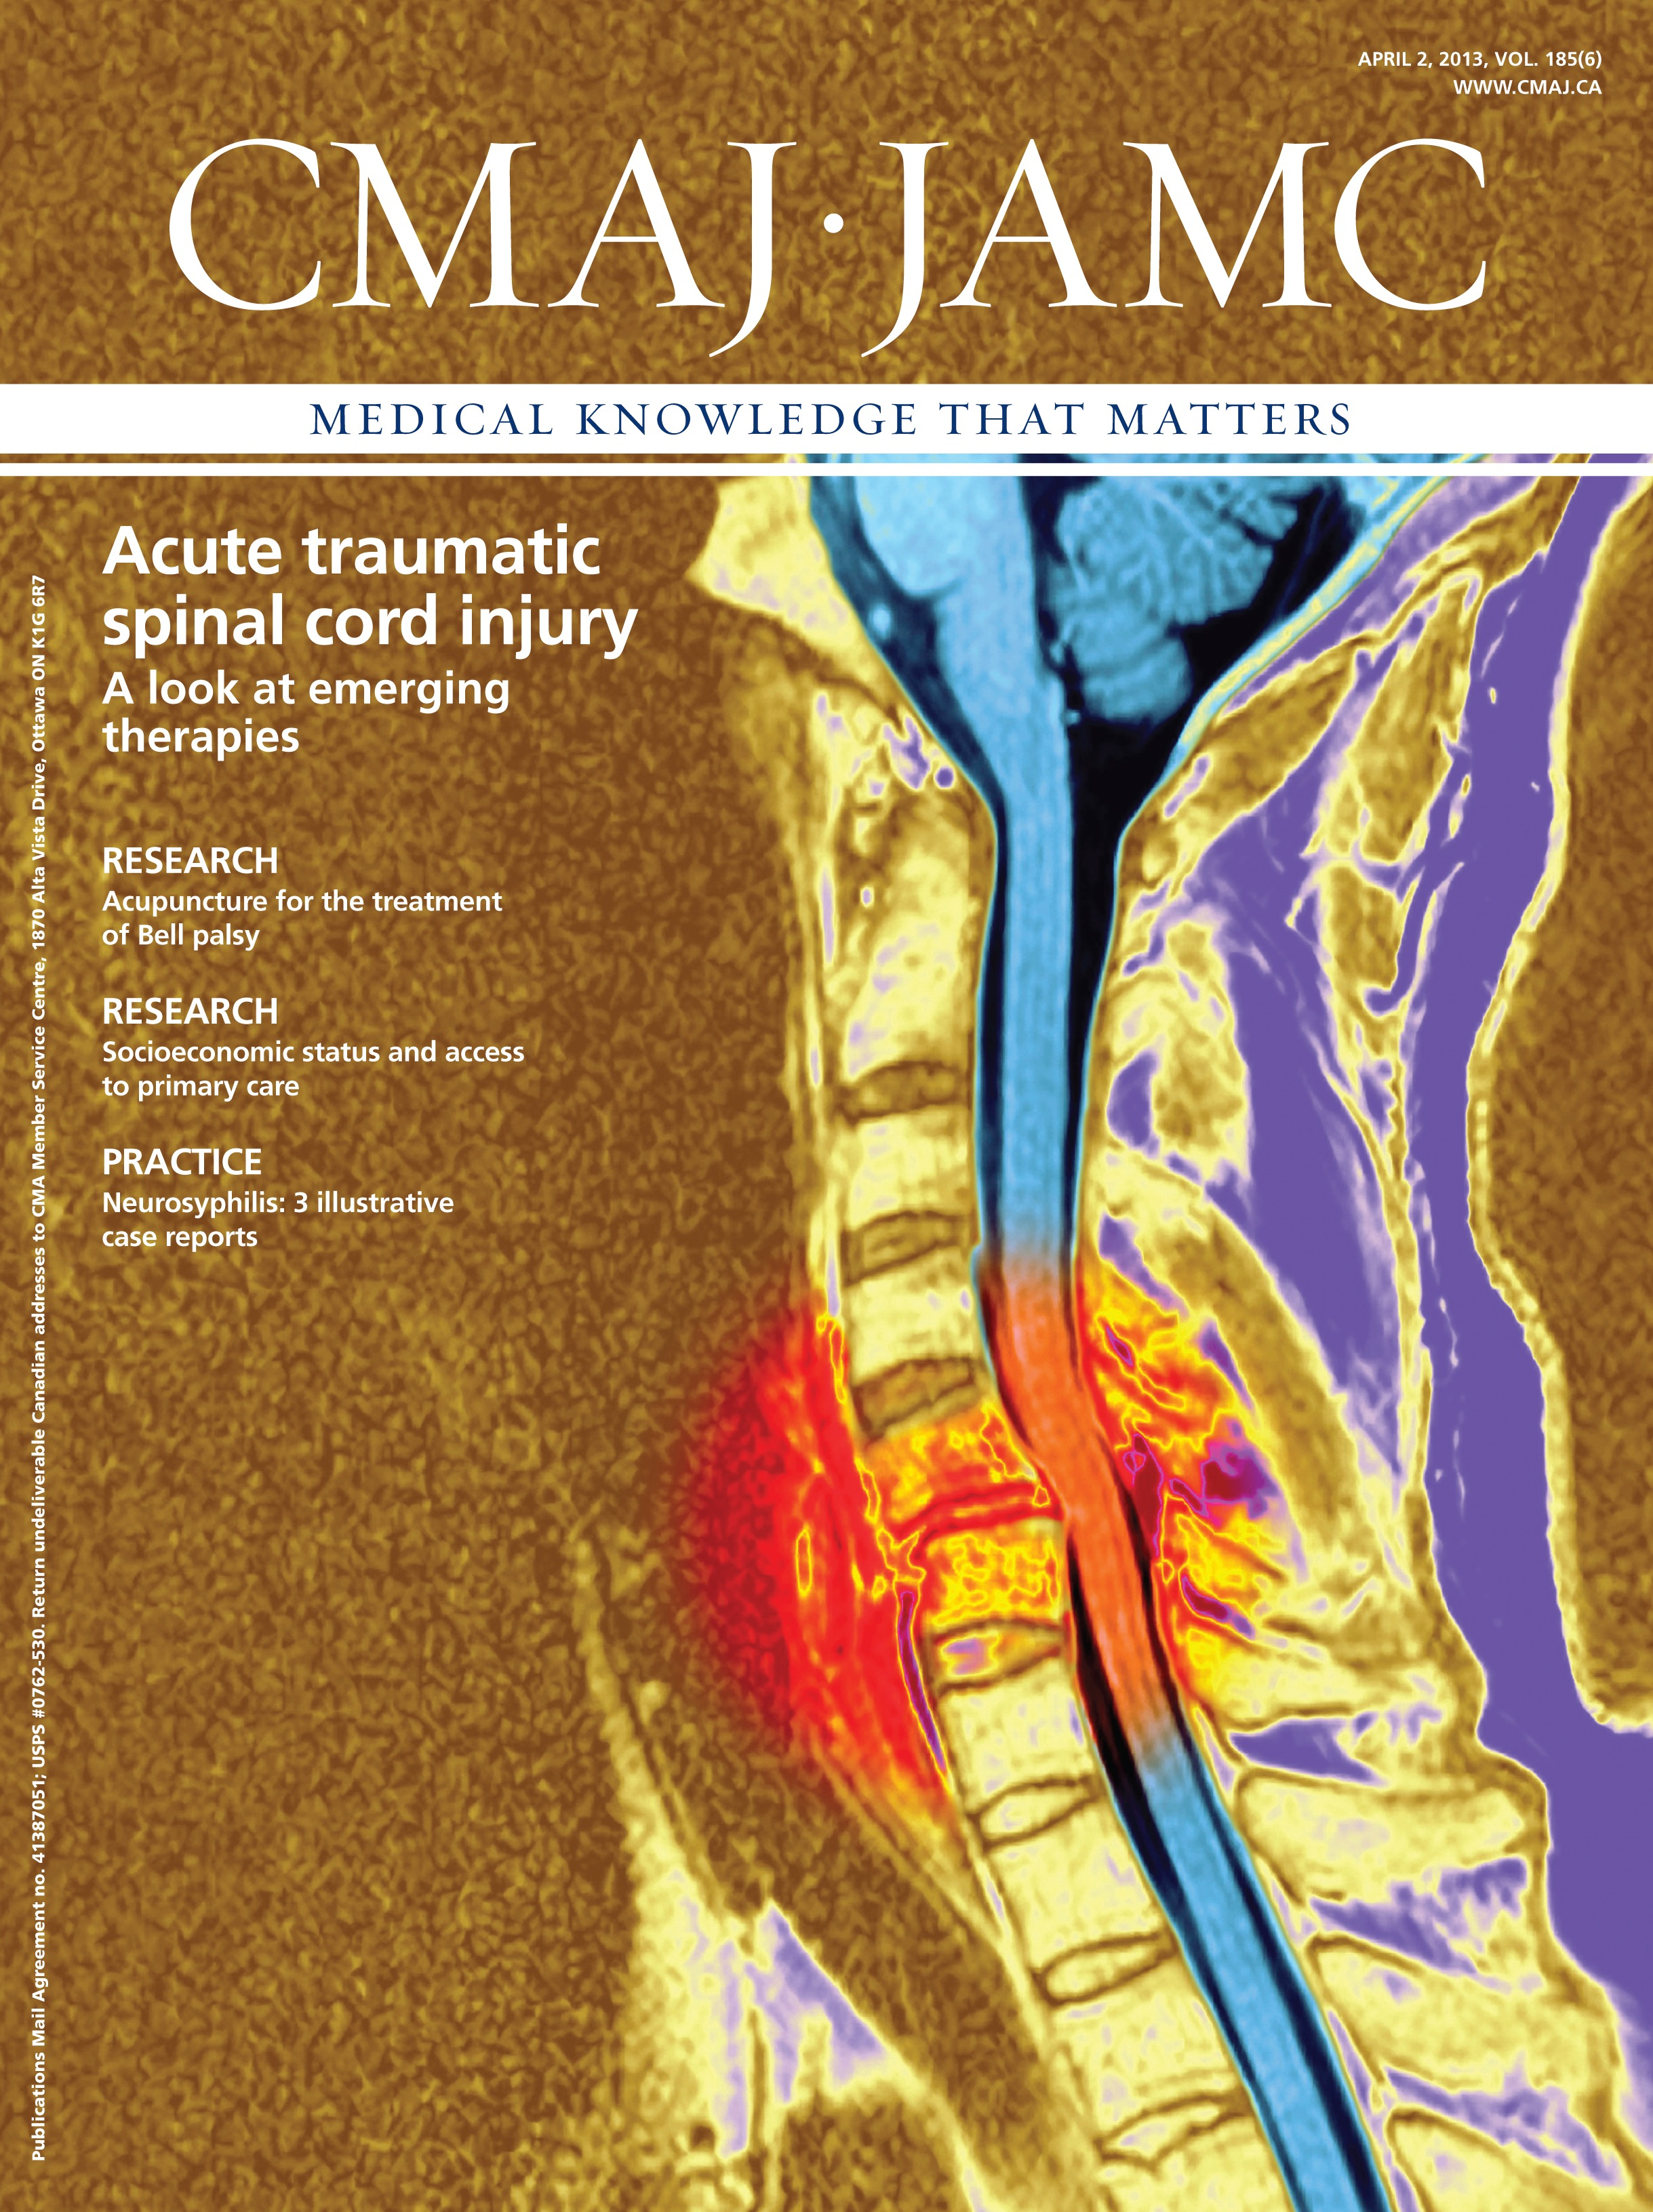 Emerging Therapies For Acute Traumatic Spinal Cord Injury Cmaj